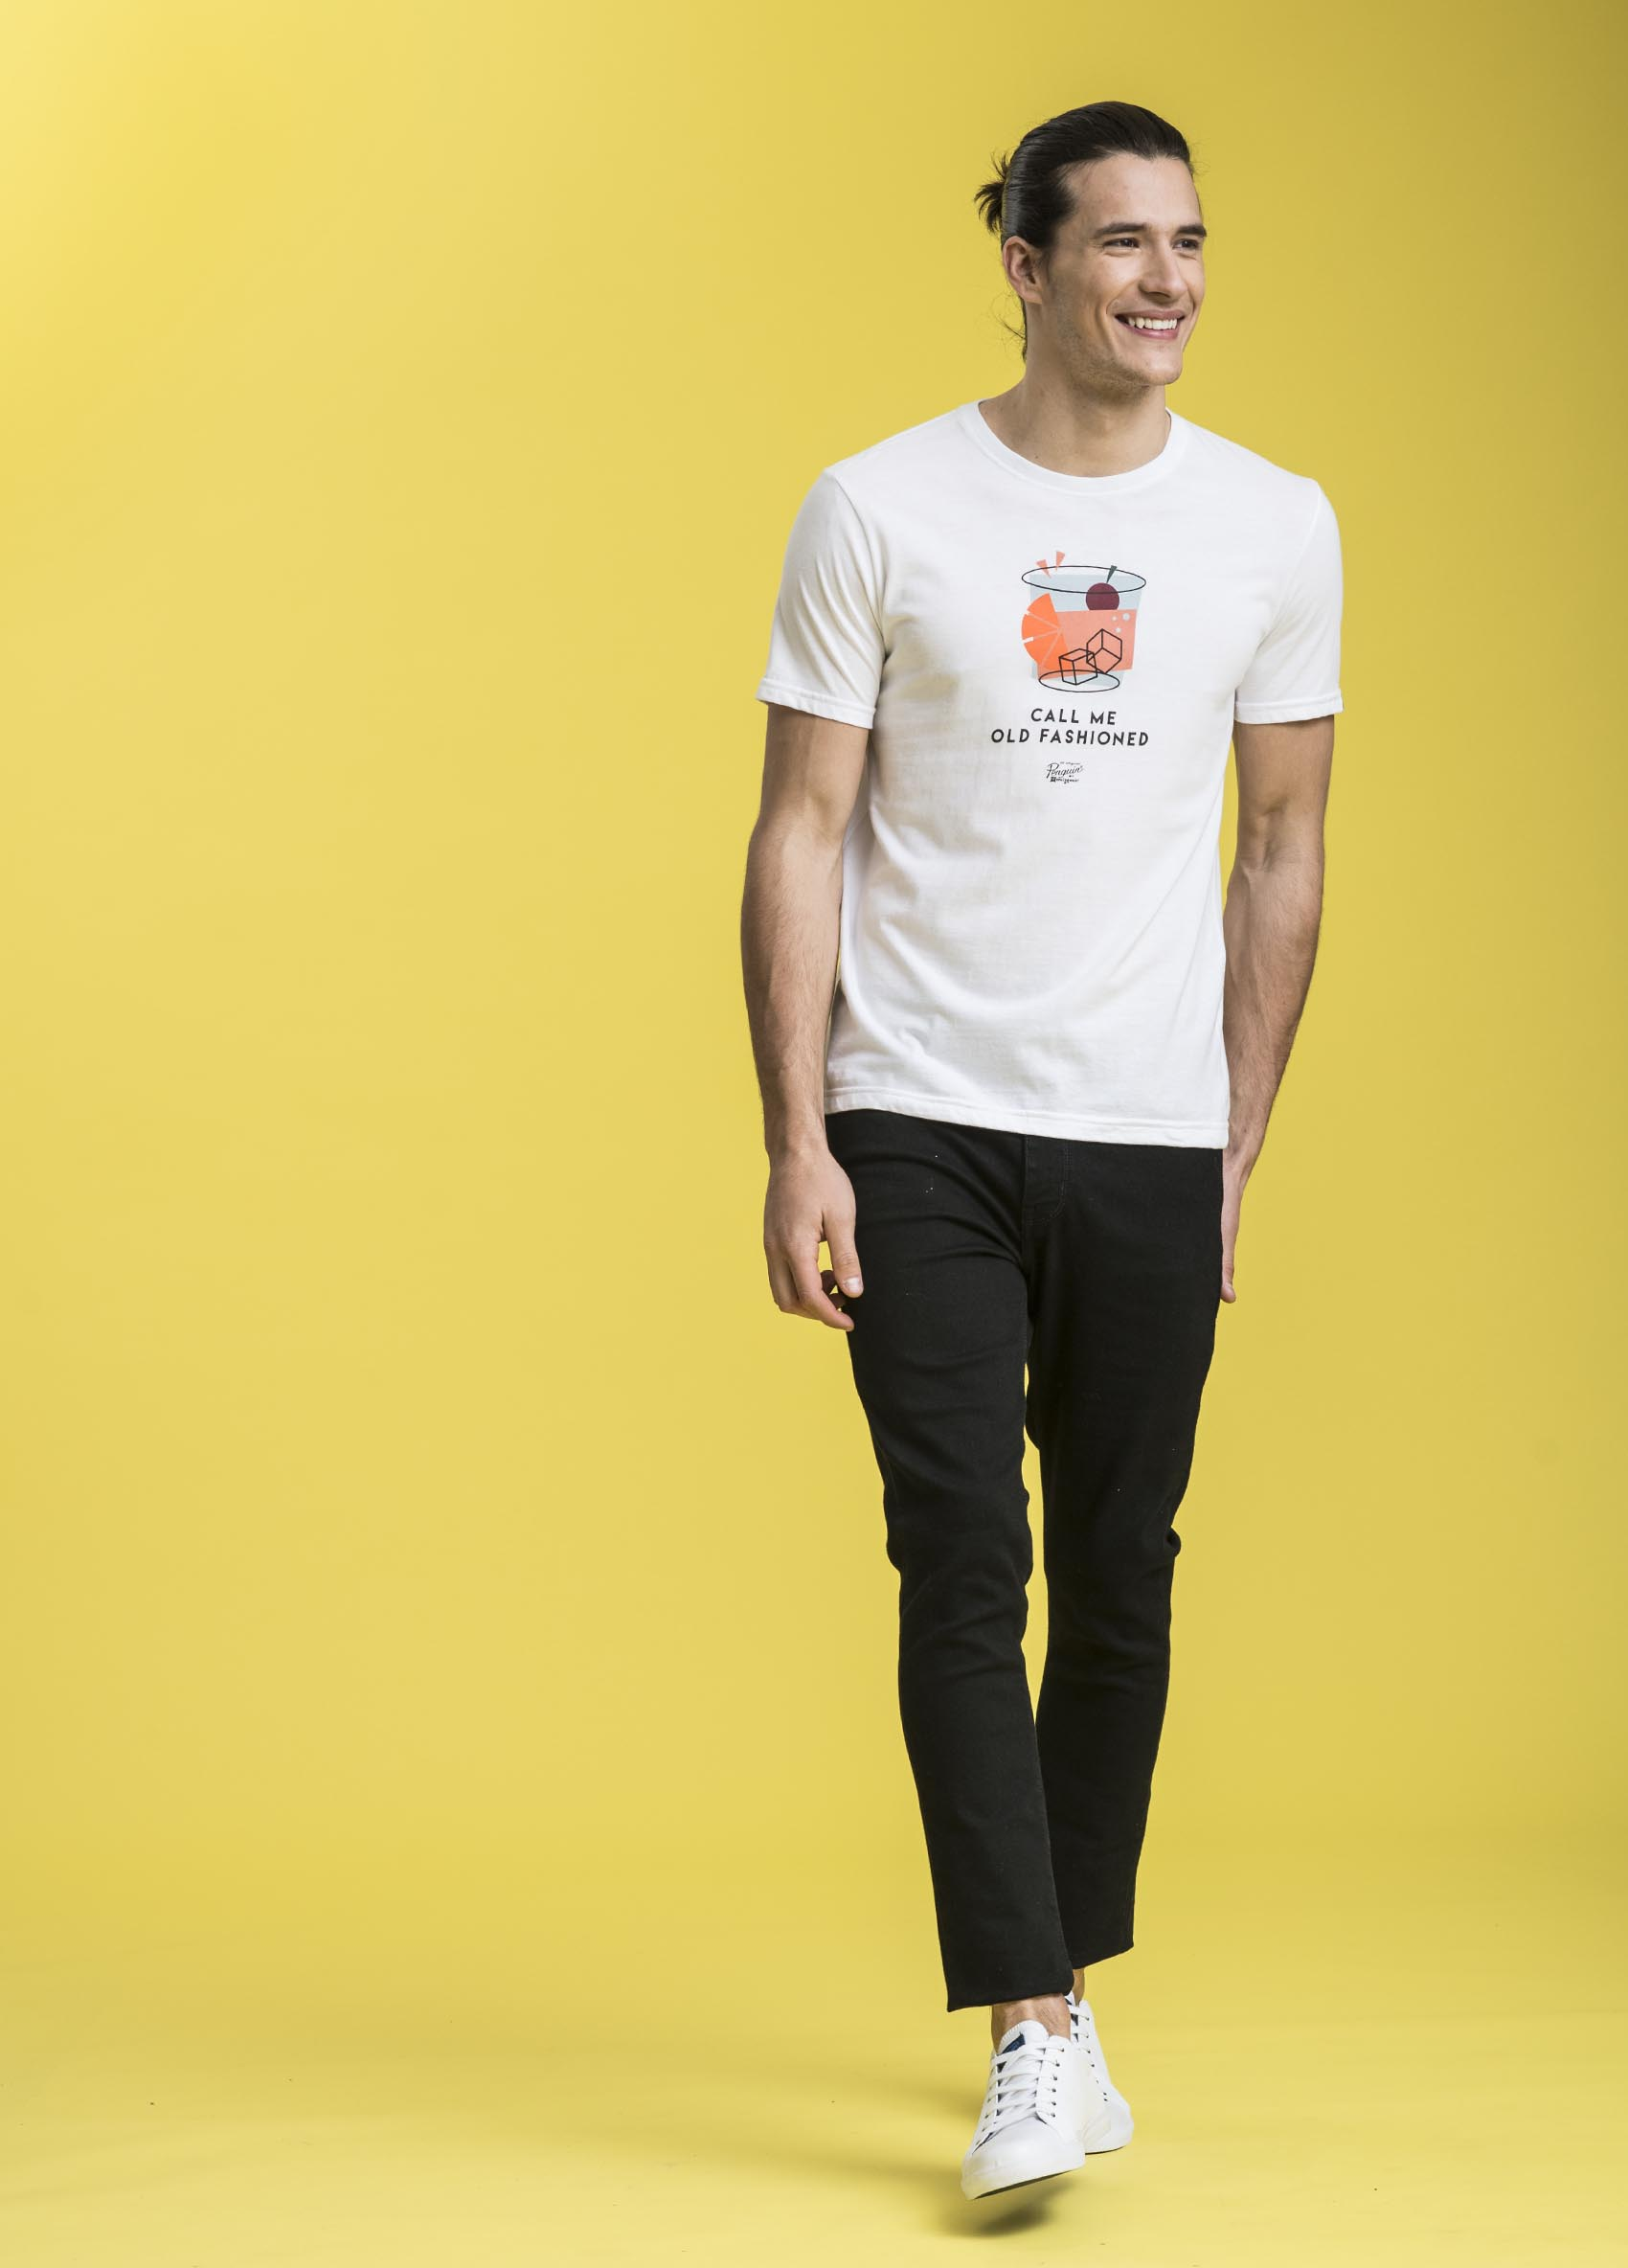 penguin_call-me-old-fashioned-tee_35-25-2019__picture-12399